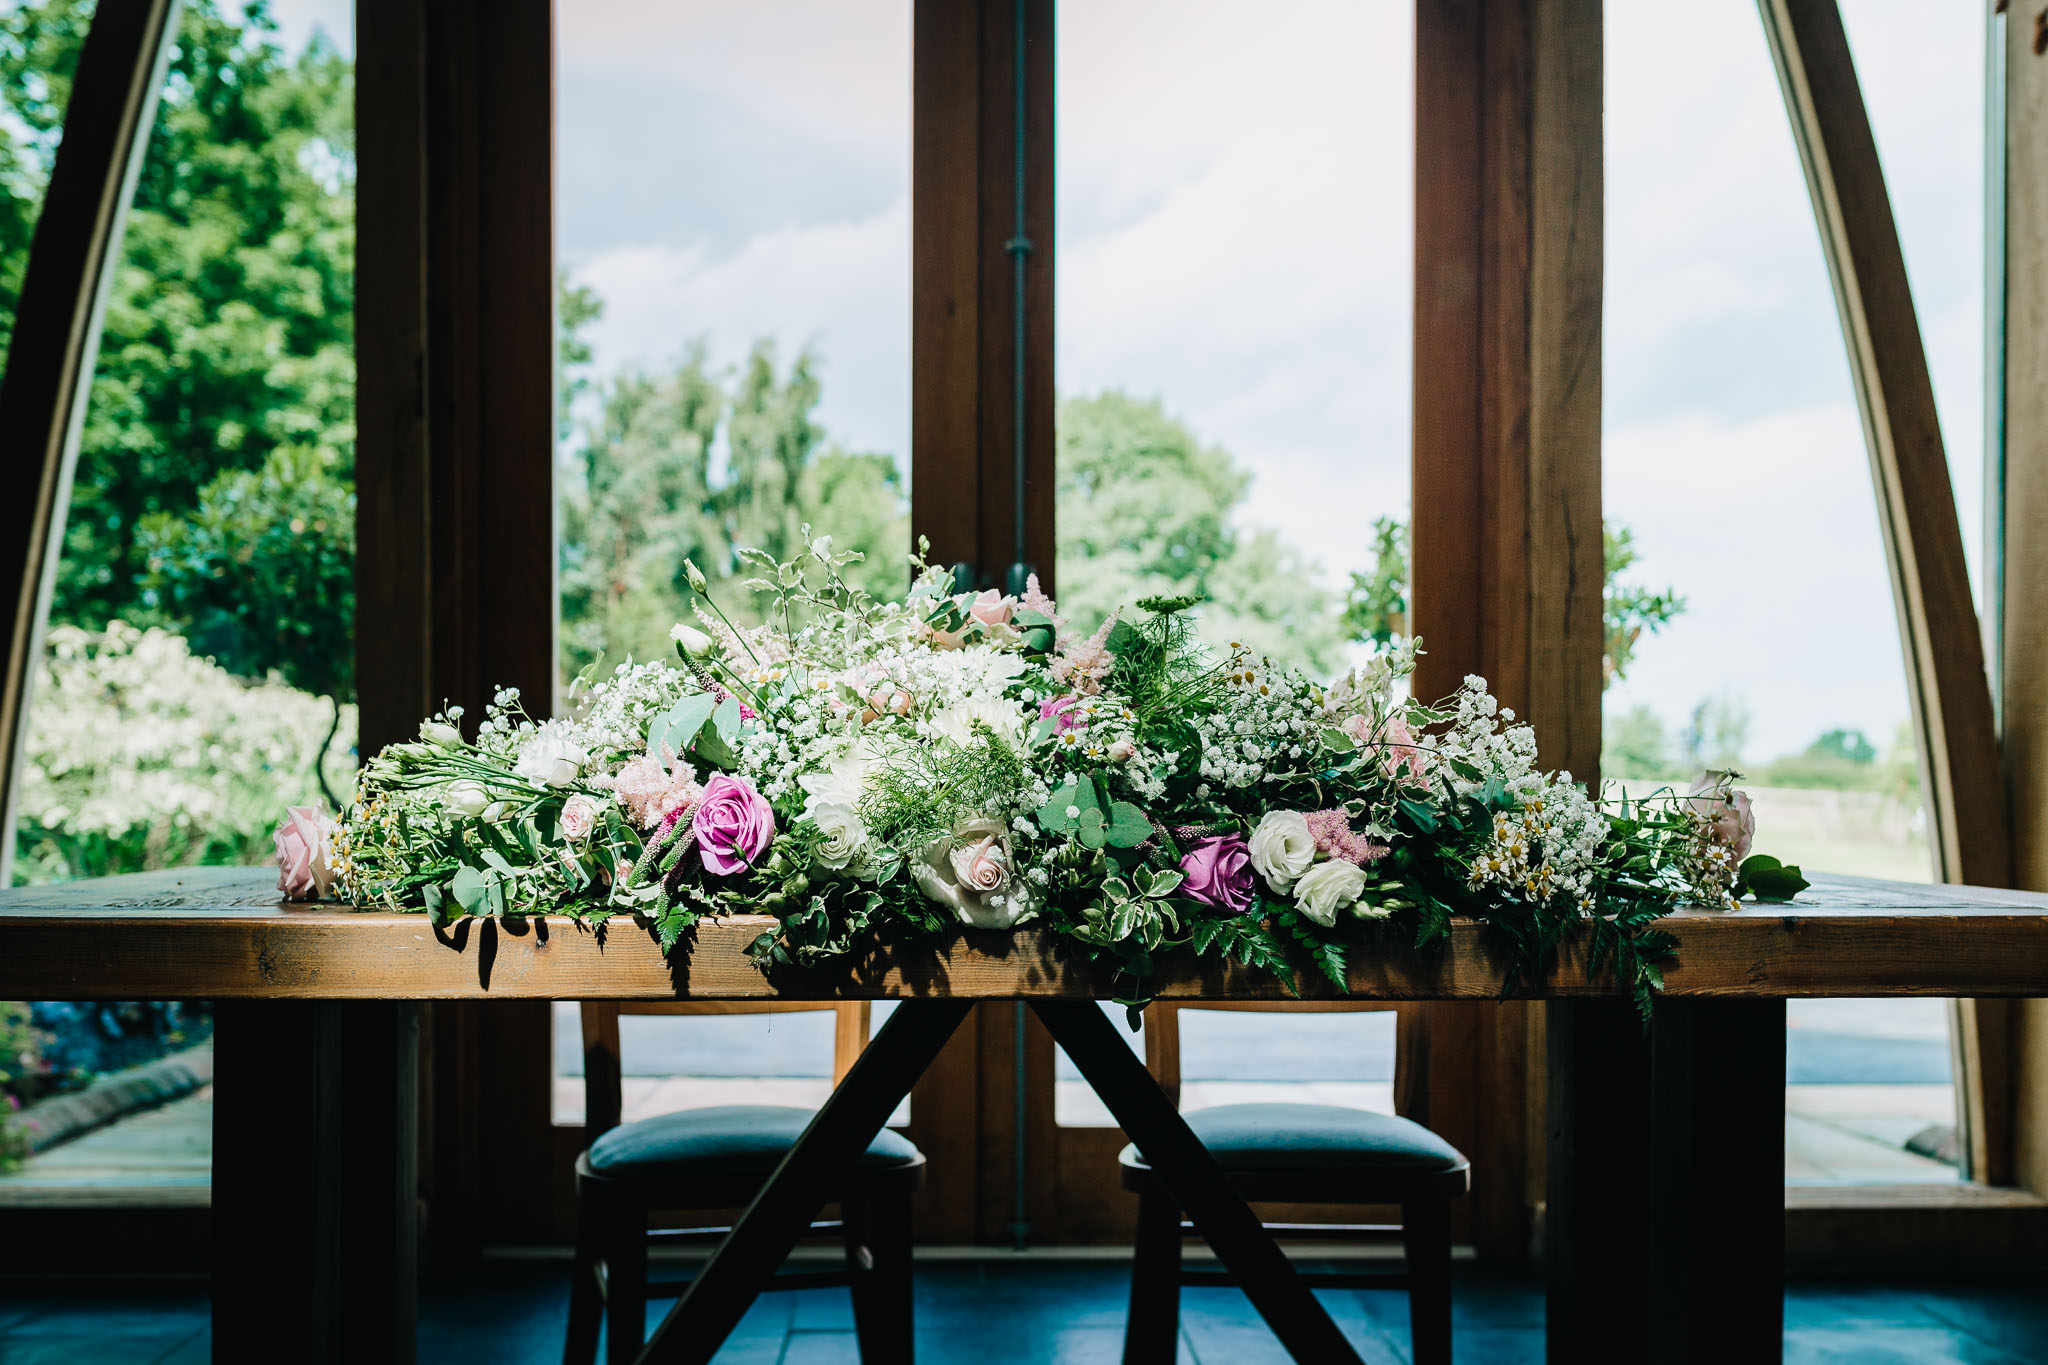 WEDDING FLOWERS BY THE GARDEN ROSE FLORIST